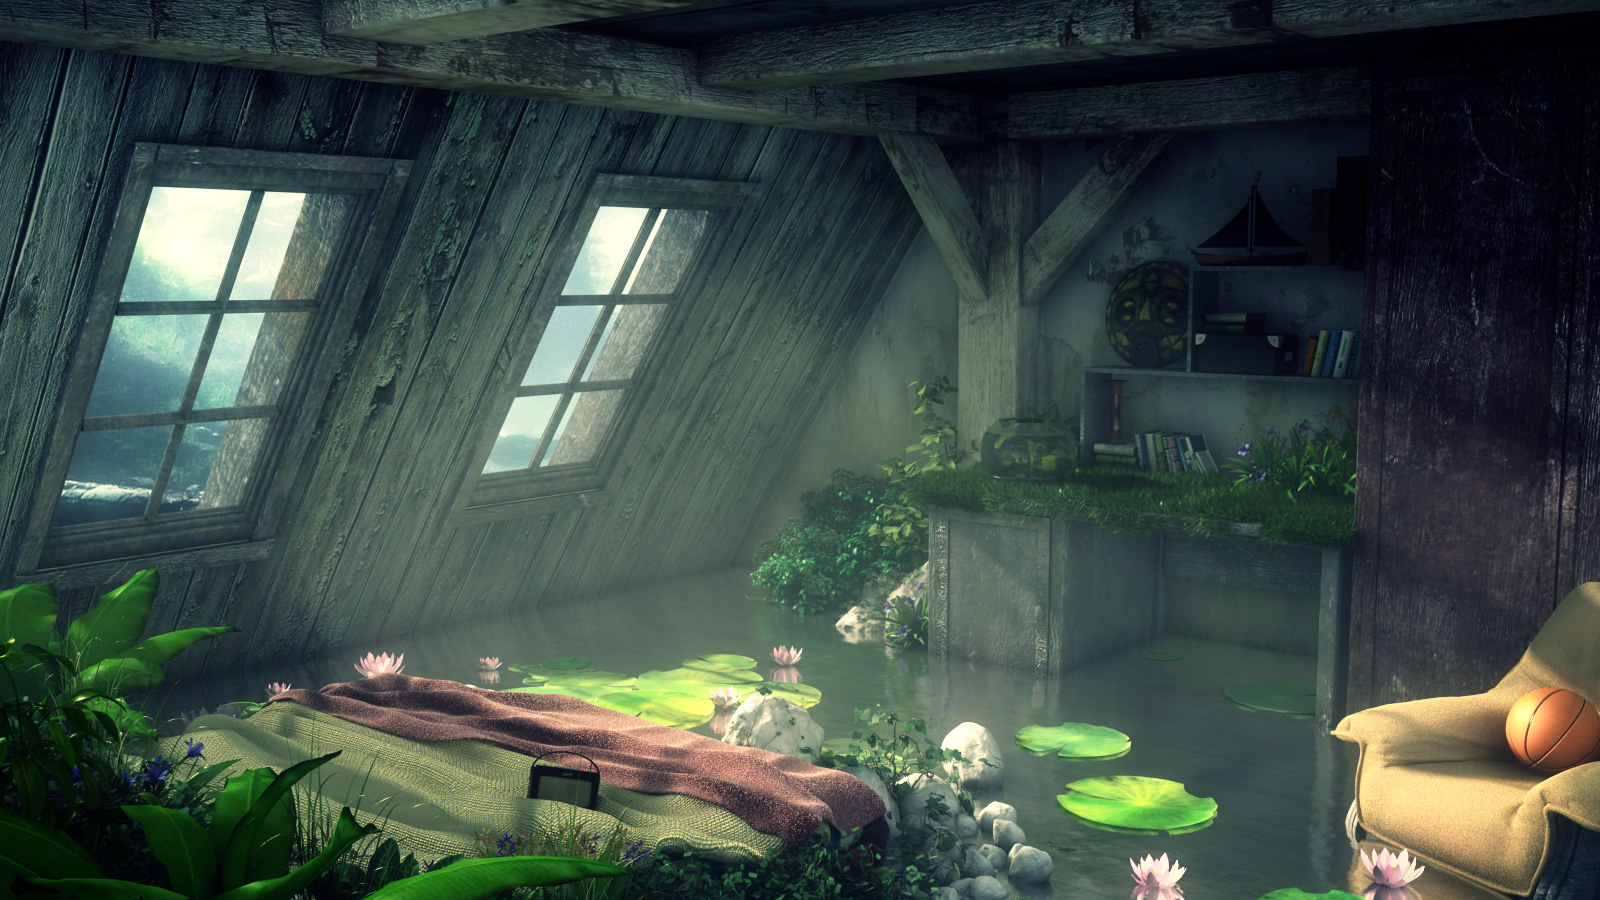 Forest in the attic by hoangphamvfx on deviantart for Nature room wallpaper